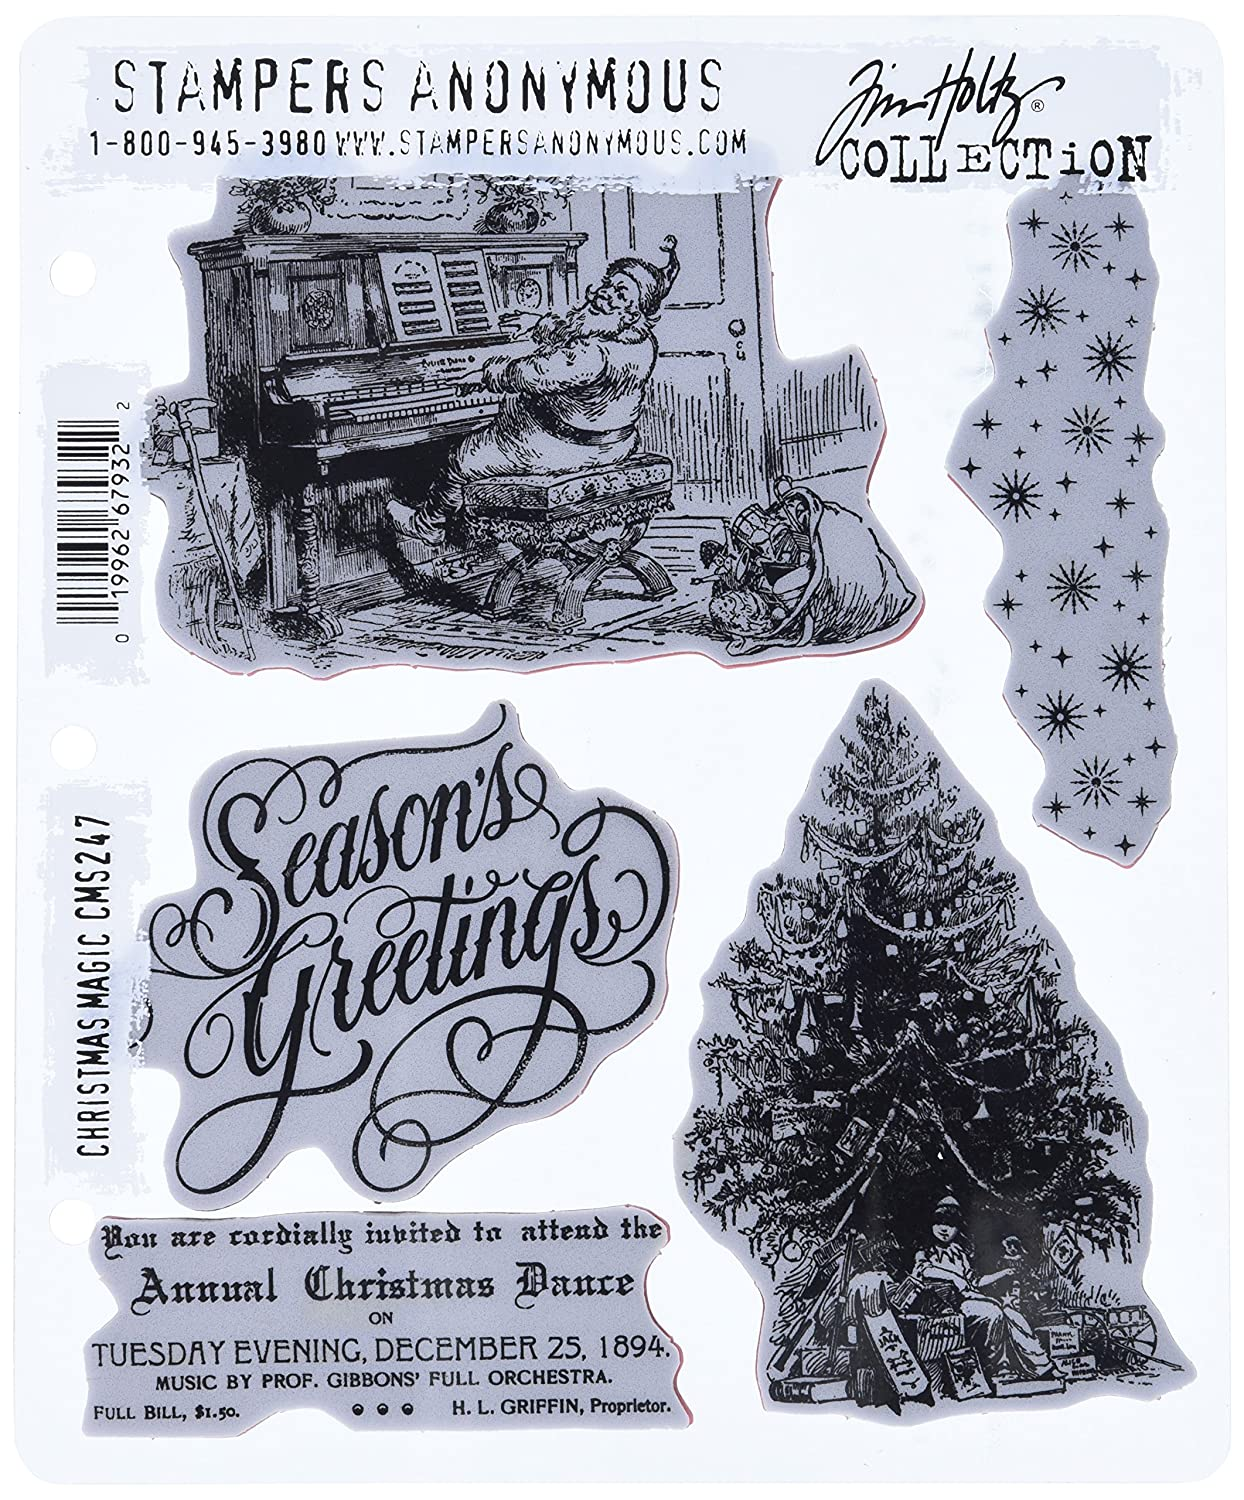 Stampers Anonymous Tim Holtz Cling Rubber Stamp Set, 7 by 8.5, Christmas Magic 7 by 8.5 CMS-247